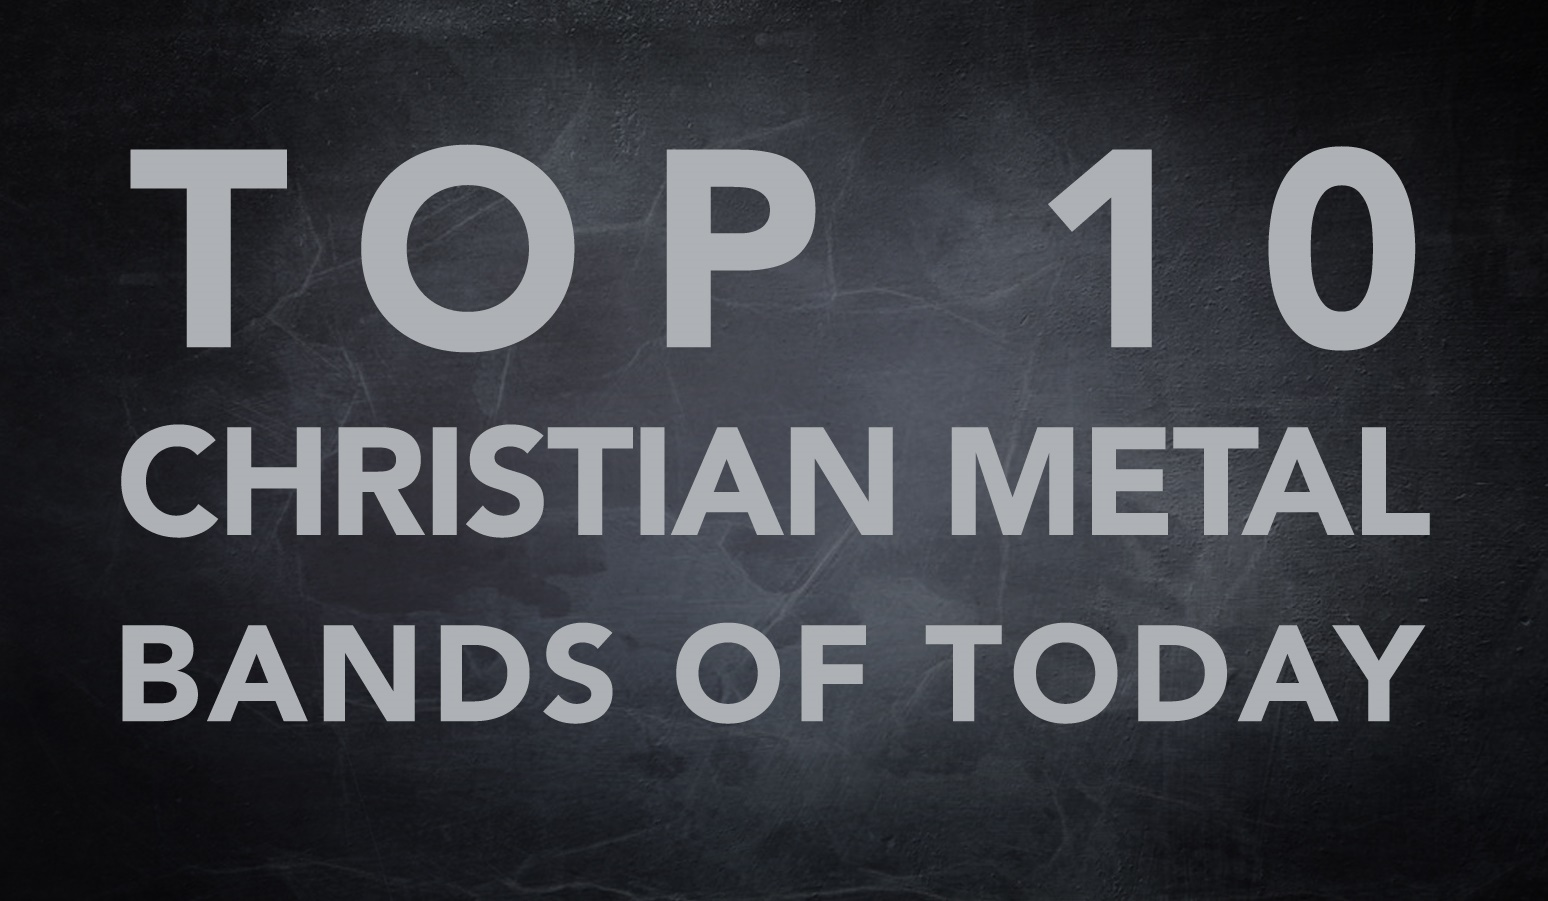 Top 10 Christian Metal Bands of Today